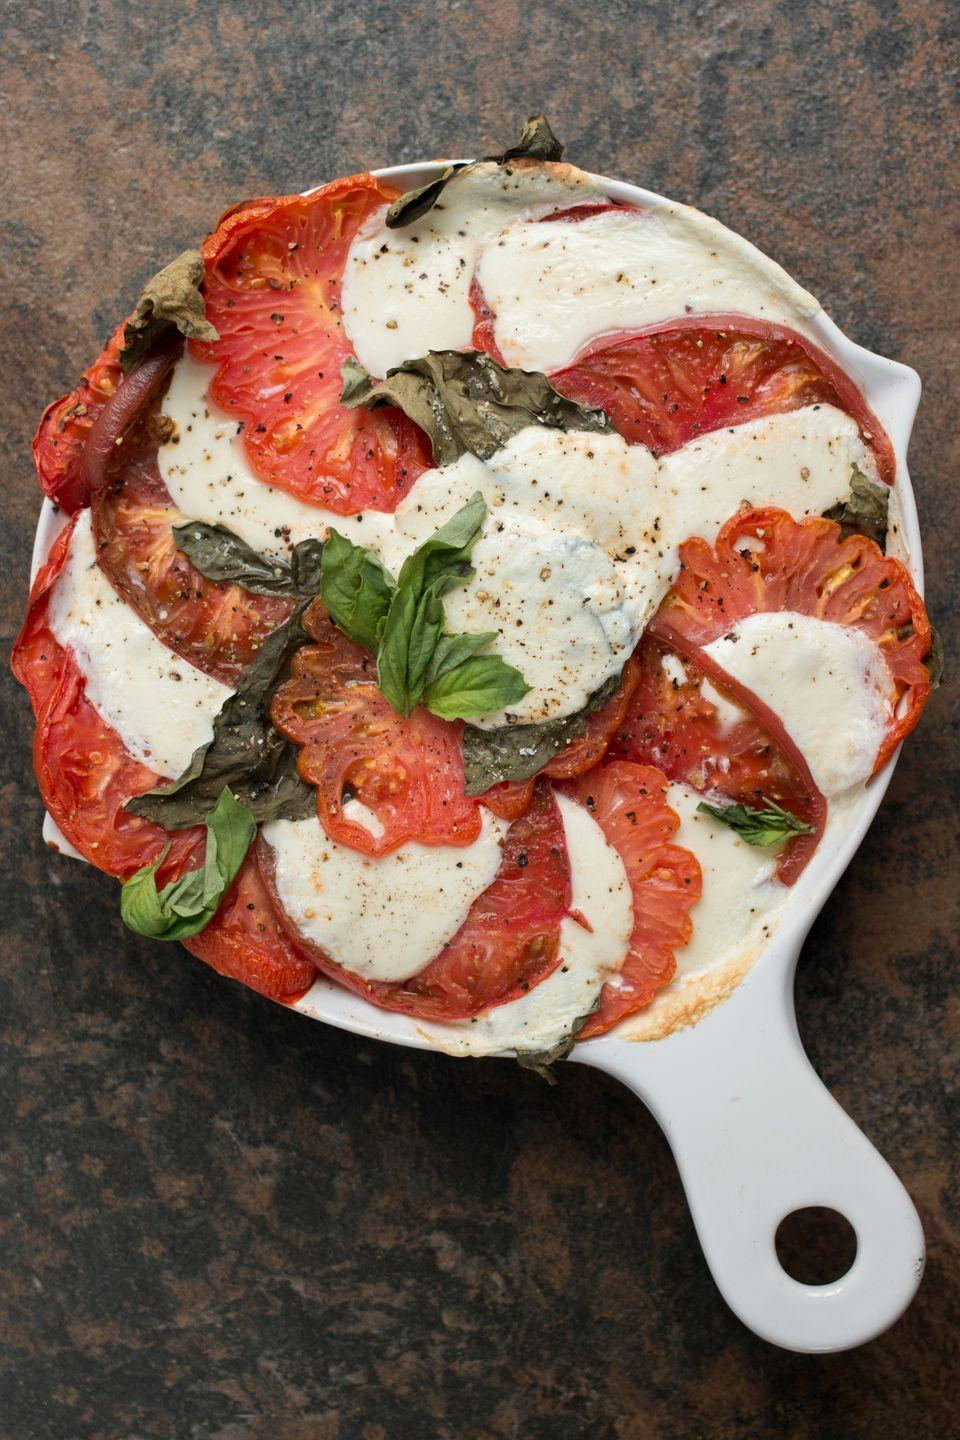 "<p>A twist on a classic you HAVE to try.</p><p>Get the recipe from <a href=""https://www.delish.com/cooking/recipe-ideas/recipes/a54333/caprese-quinoa-casserole-recipe/"" rel=""nofollow noopener"" target=""_blank"" data-ylk=""slk:Delish"" class=""link rapid-noclick-resp"">Delish</a>.</p>"